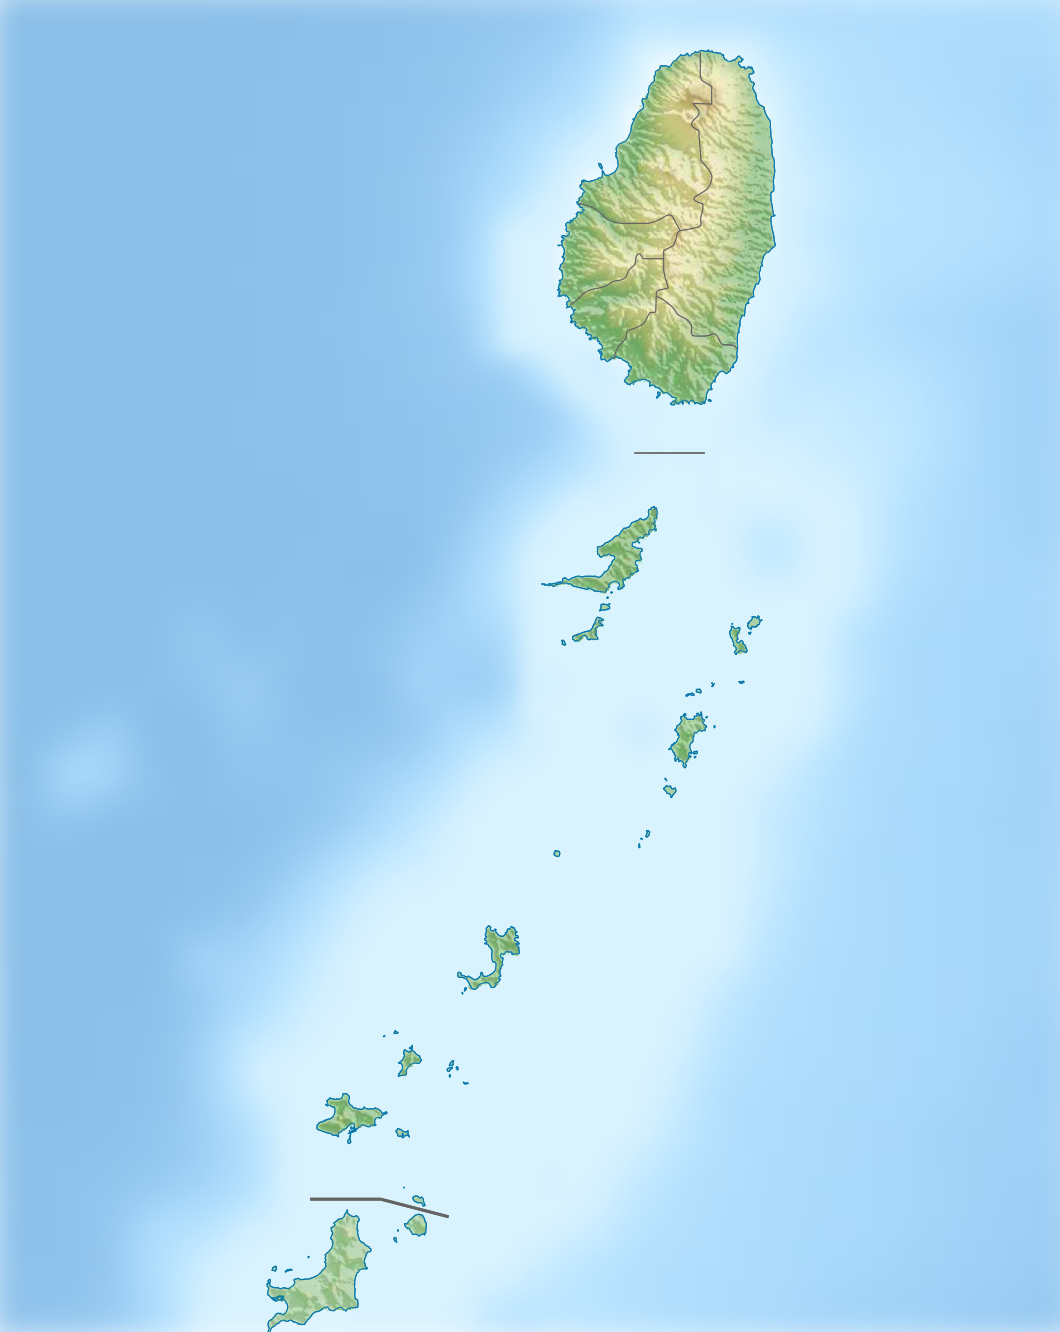 FileSaint Vincent And The Grenadines Relief Location Mapjpg - Saint vincent and the grenadines map